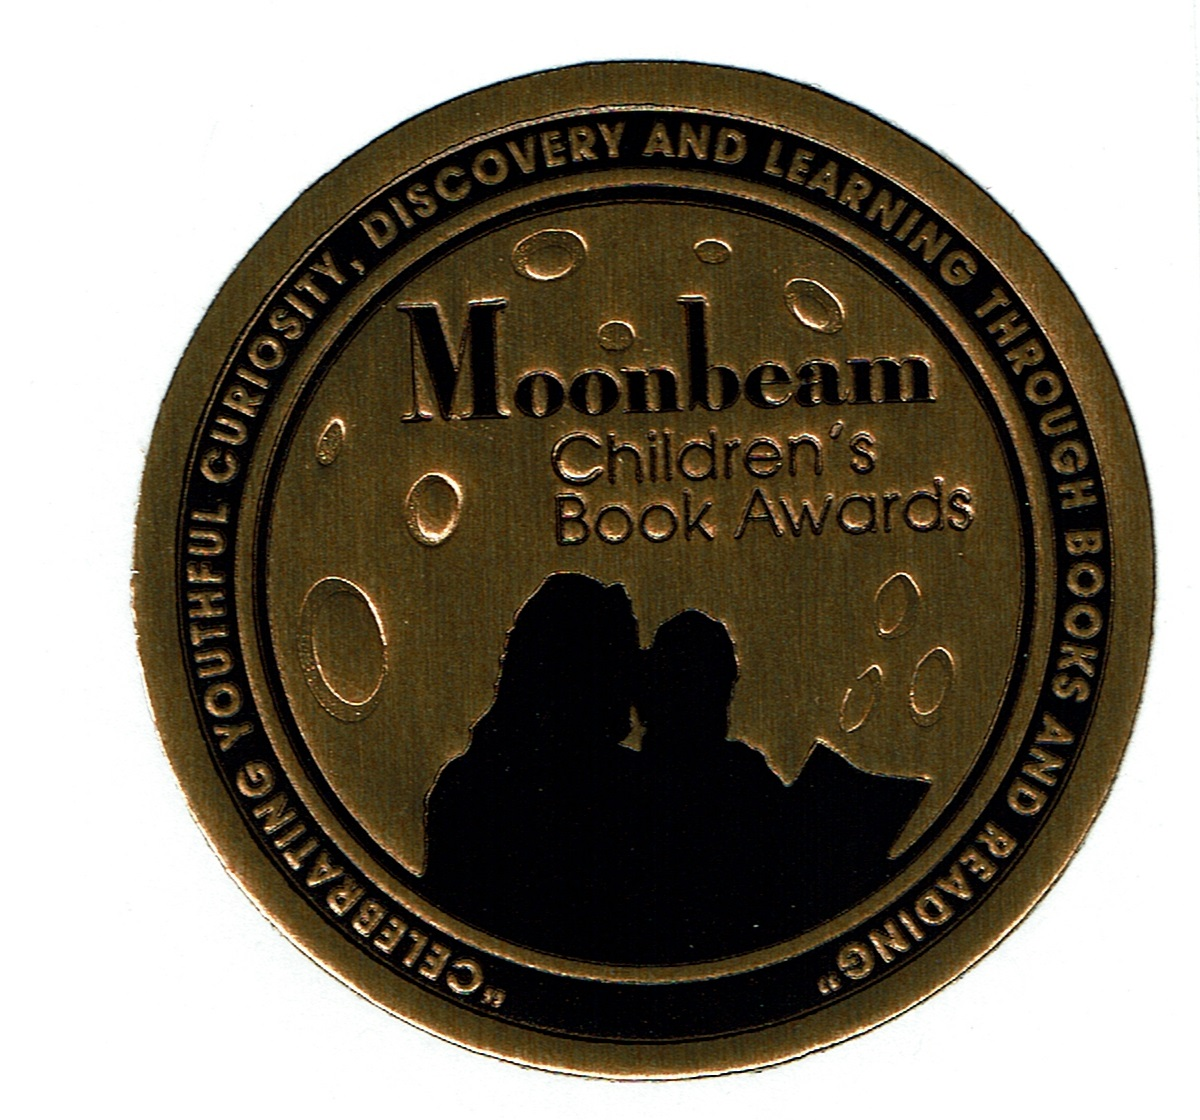 Moonbeam Children's Book Award Bronze Seal